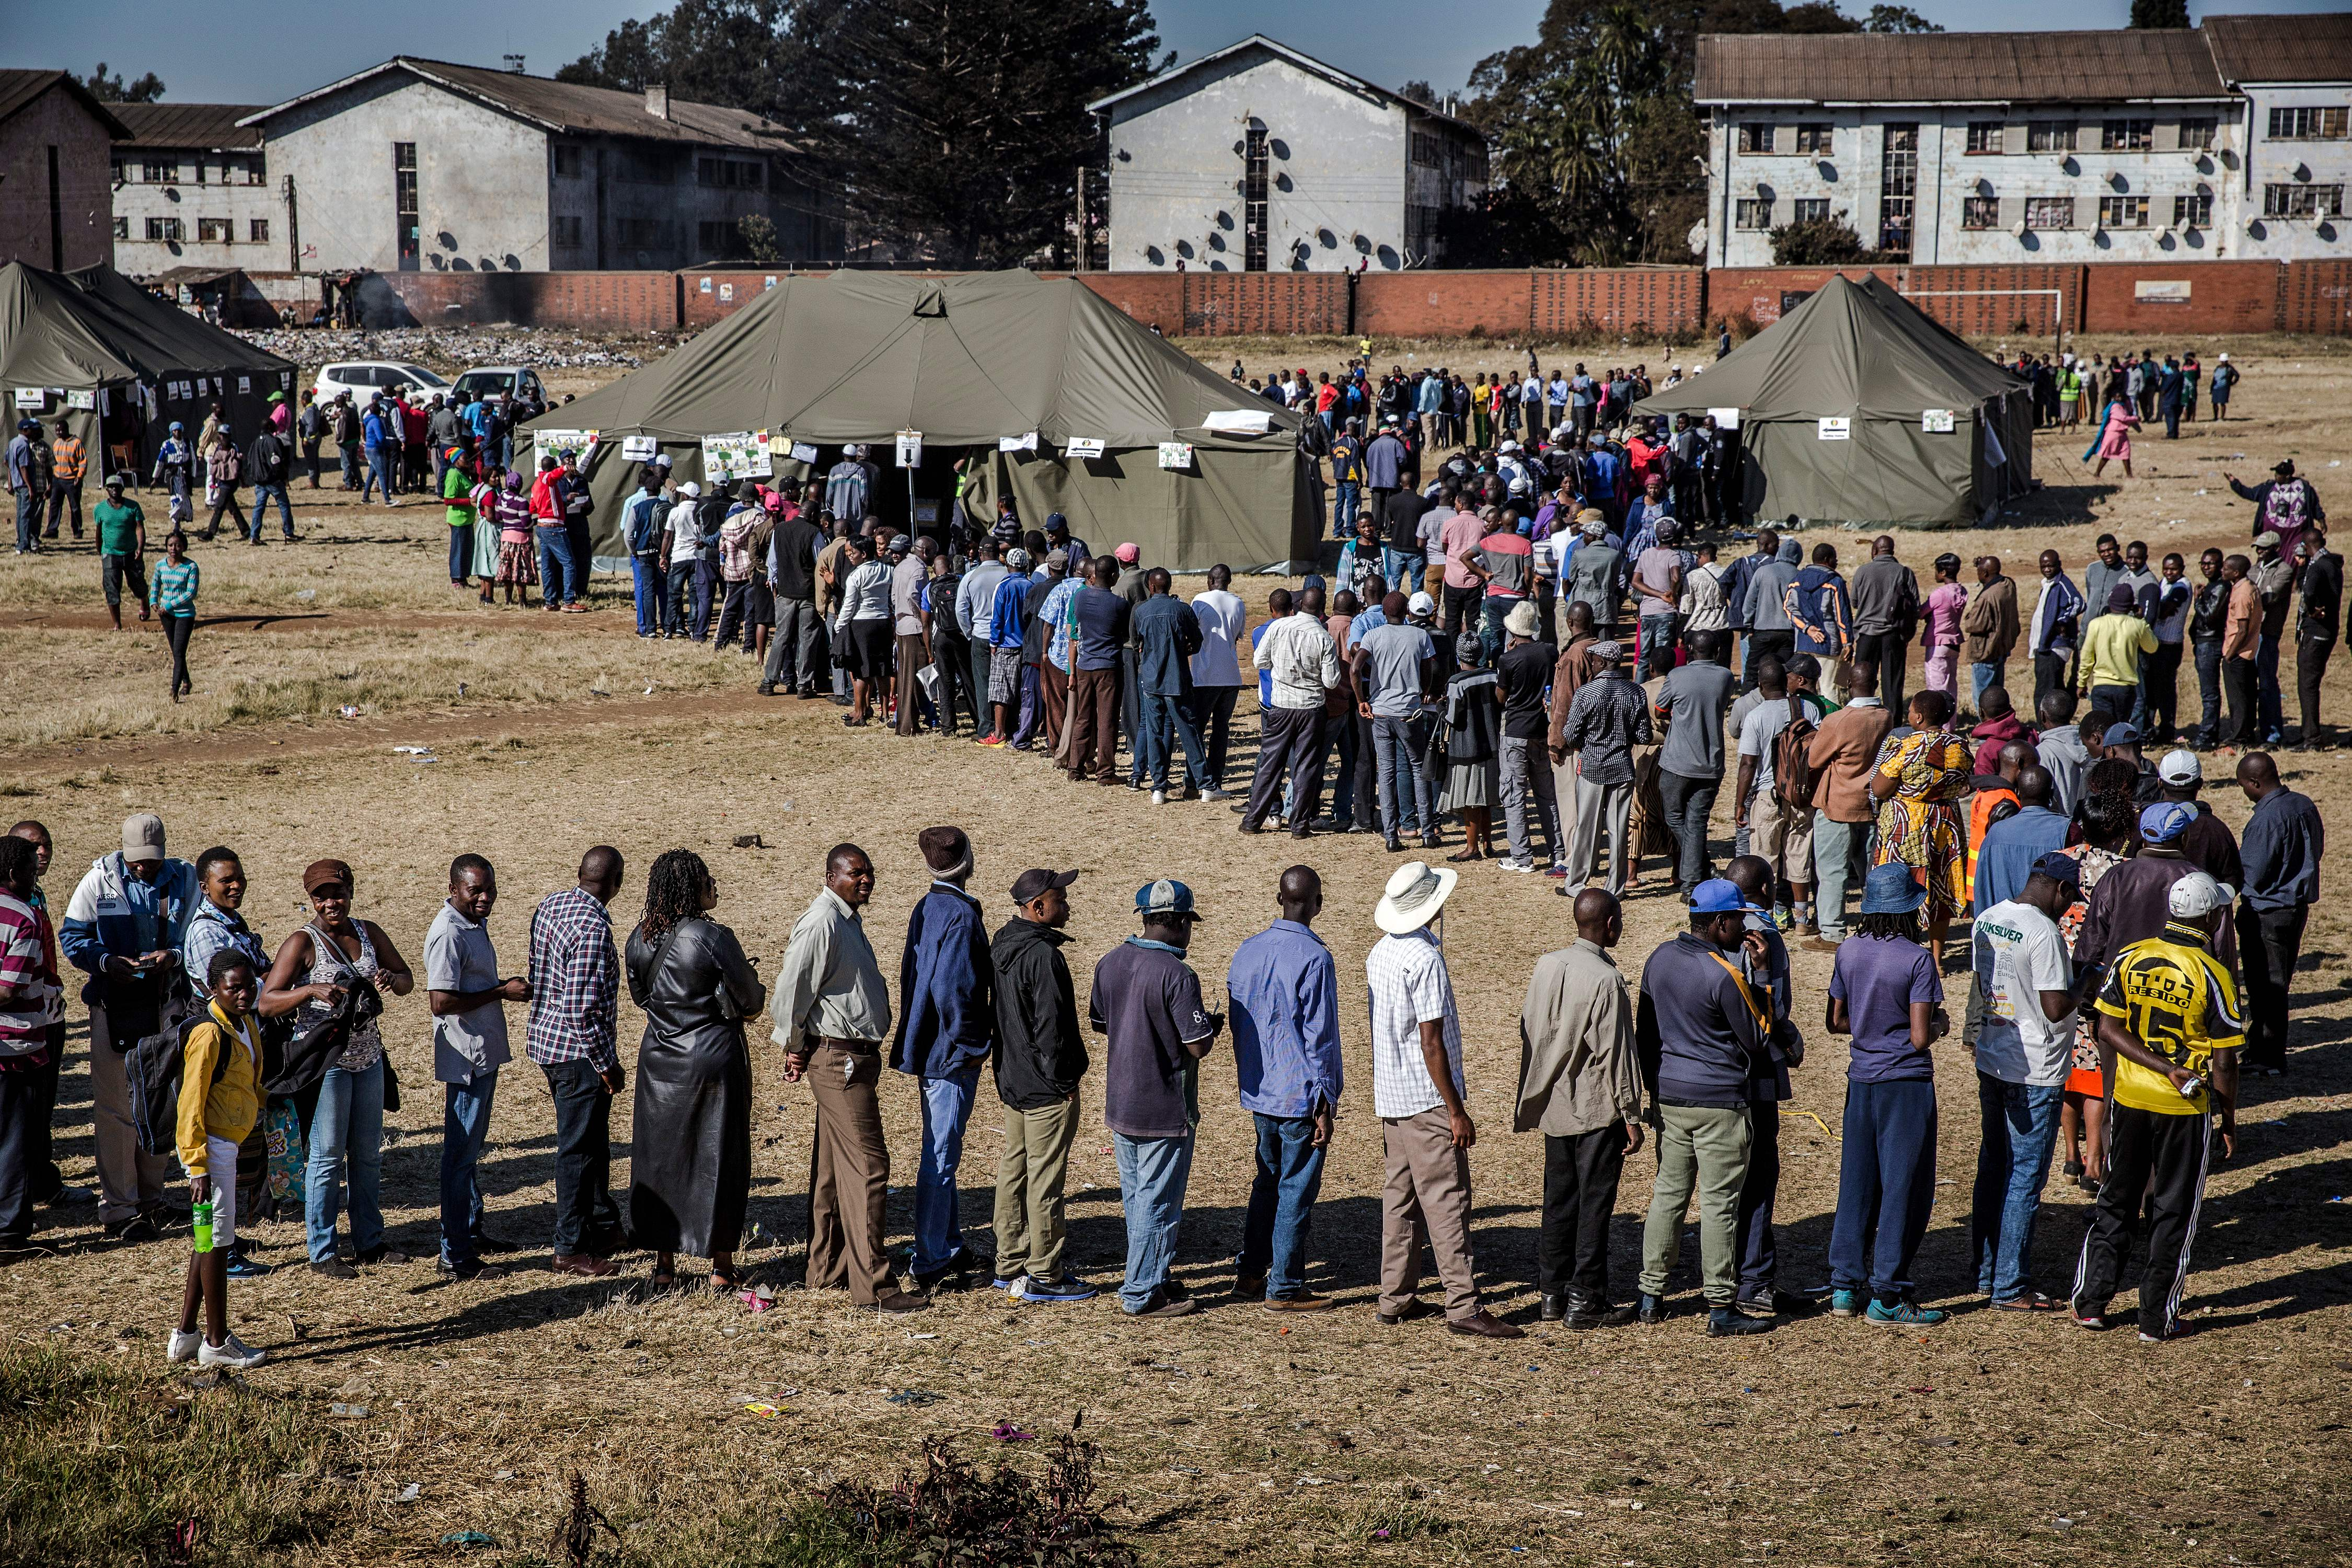 People queue in order to cast their ballot outside a polling station located in the suburb of Mbare in Zimbabwe's capital Harare, on July 30, 2018.